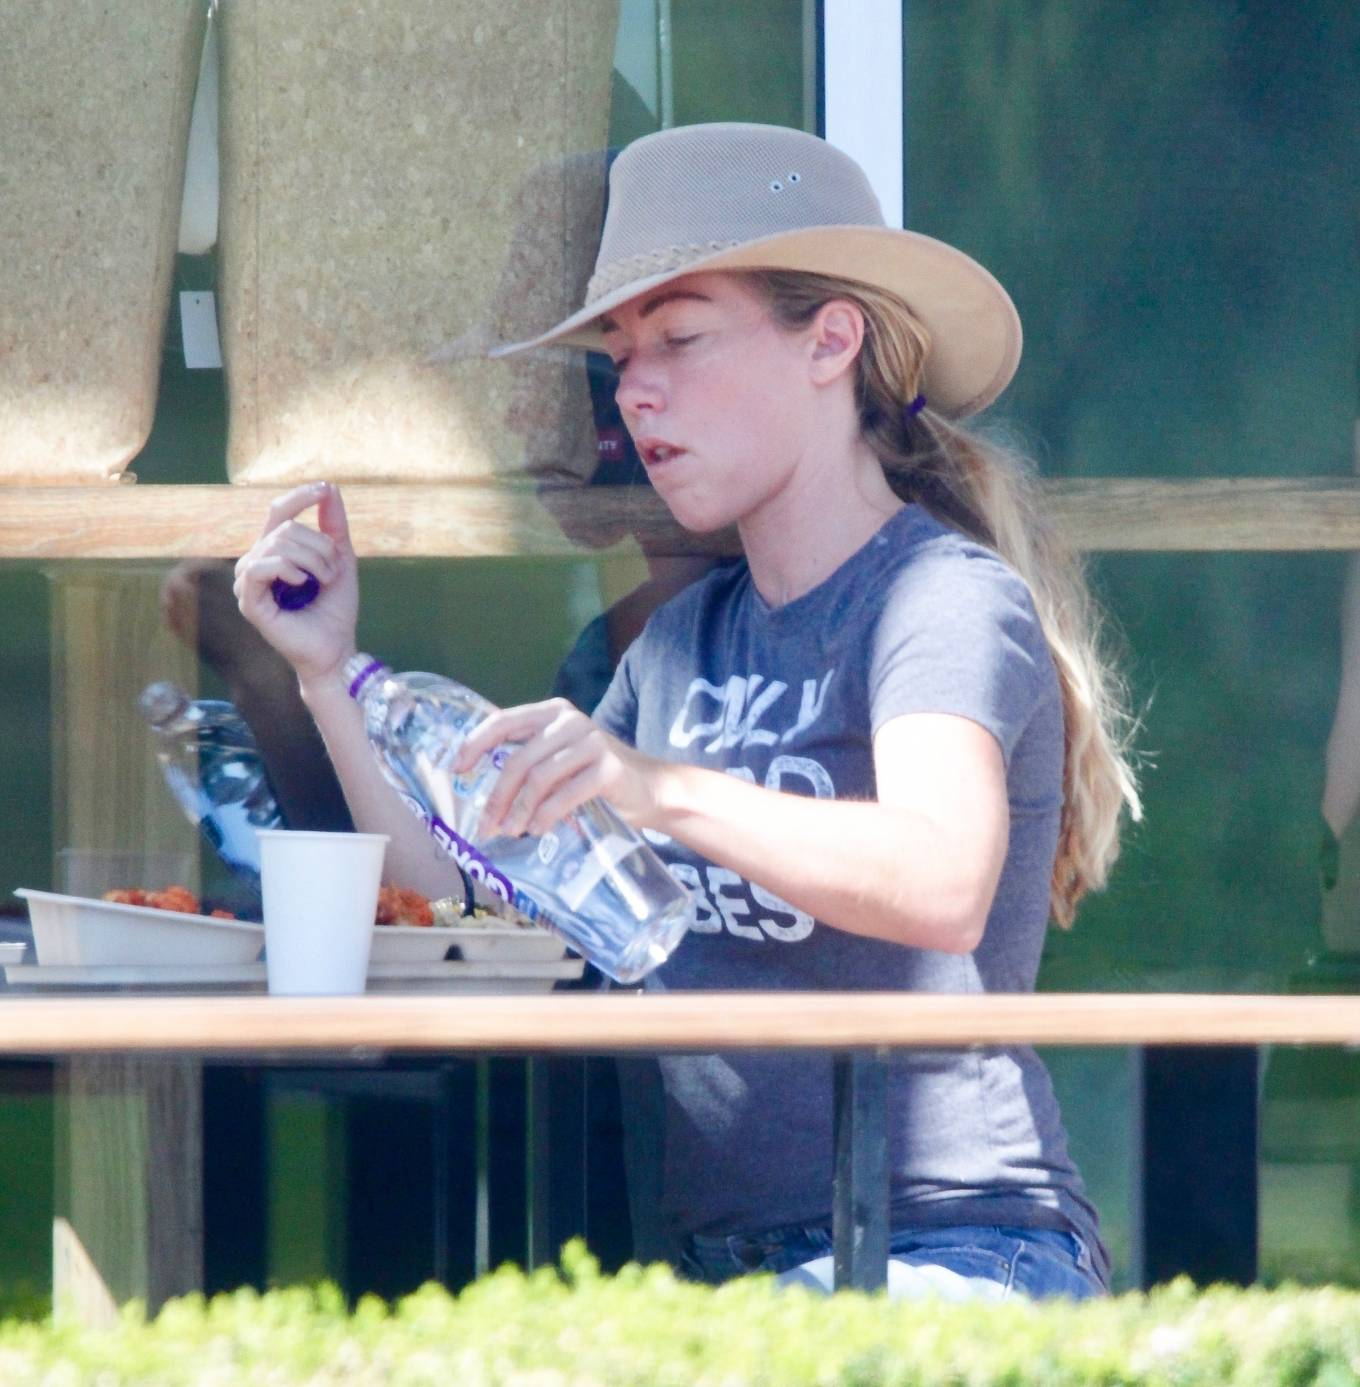 Kendra Wilkinson 2020 : Kendra Wilkinson – Wears an Only Good Vibes T-Shirt at Erewhon Market in Calabasas-09